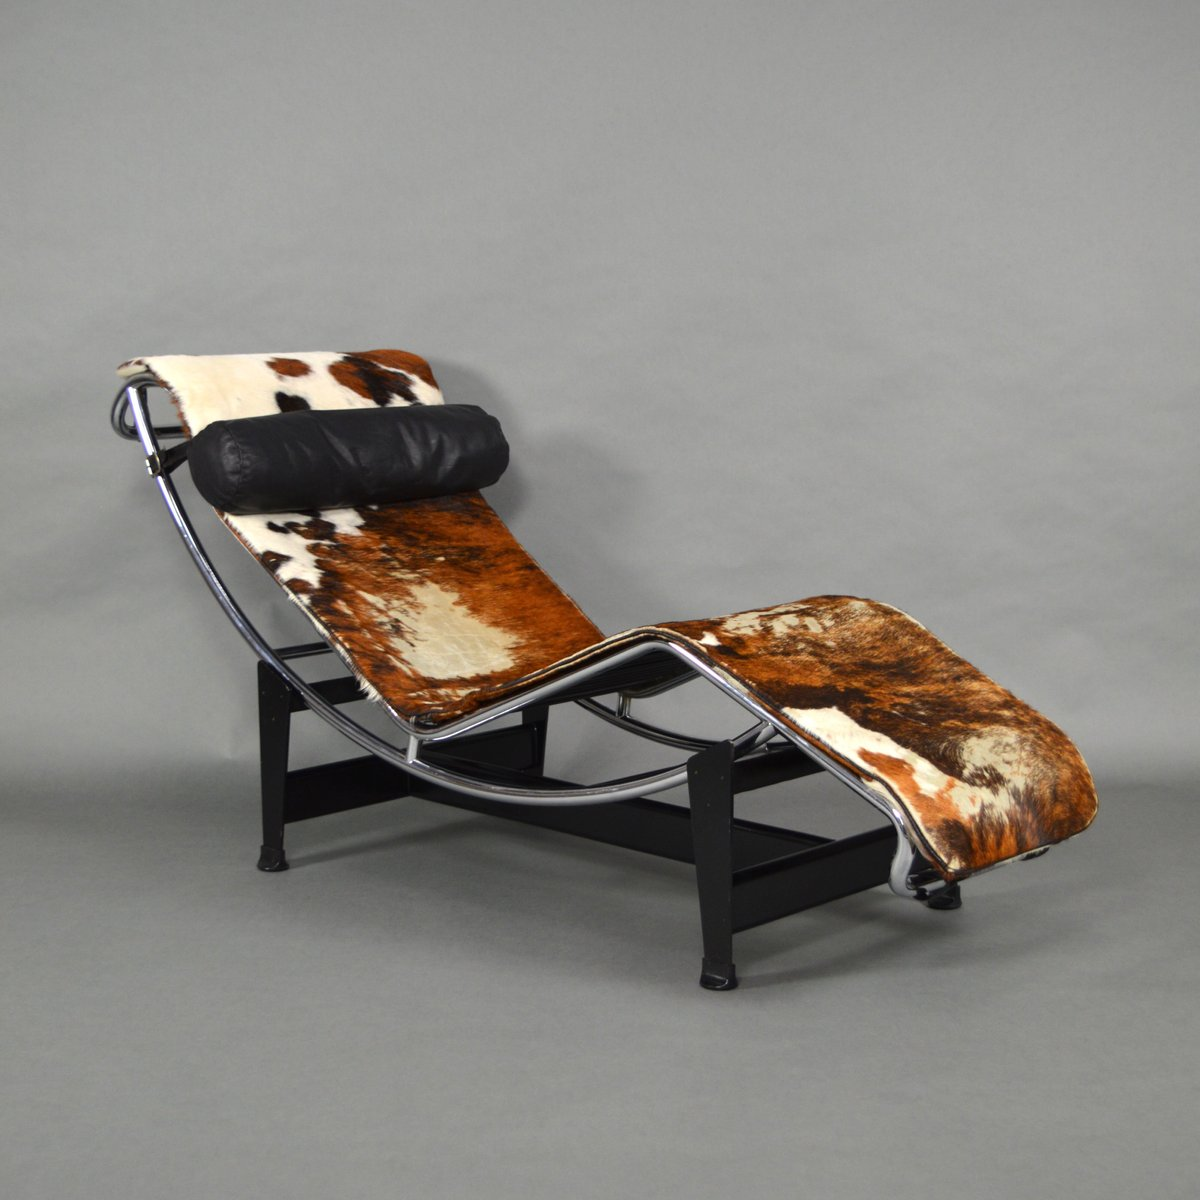 lc4 chaise lounge by le corbusier for cassina 1960s for sale at pamono. Black Bedroom Furniture Sets. Home Design Ideas